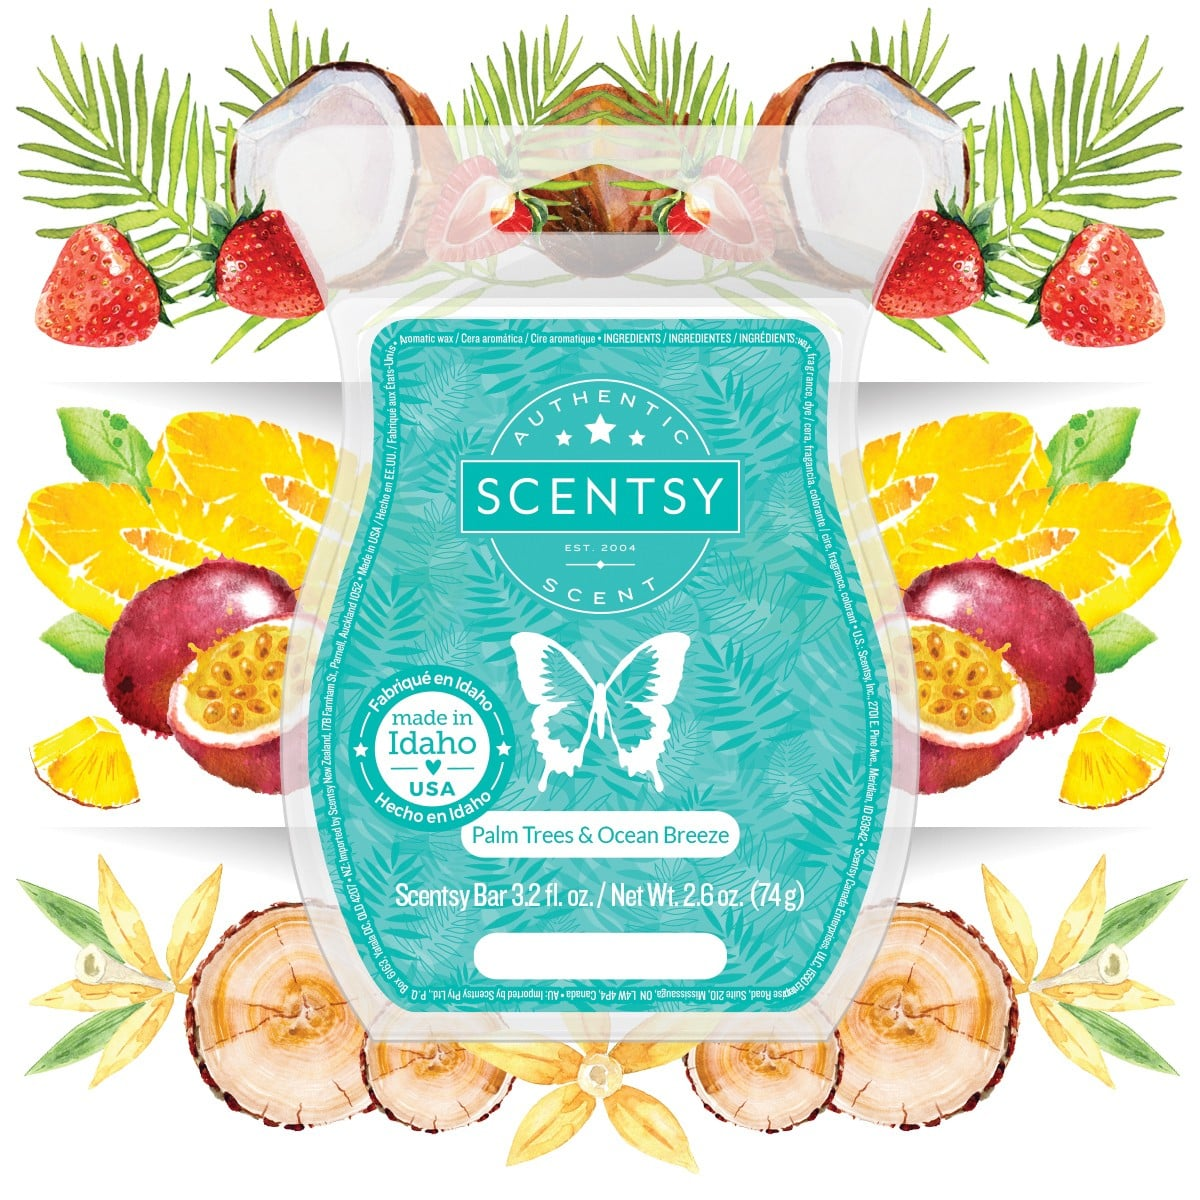 PALM TREES OCEAN BREEZE SCENTSY BAR